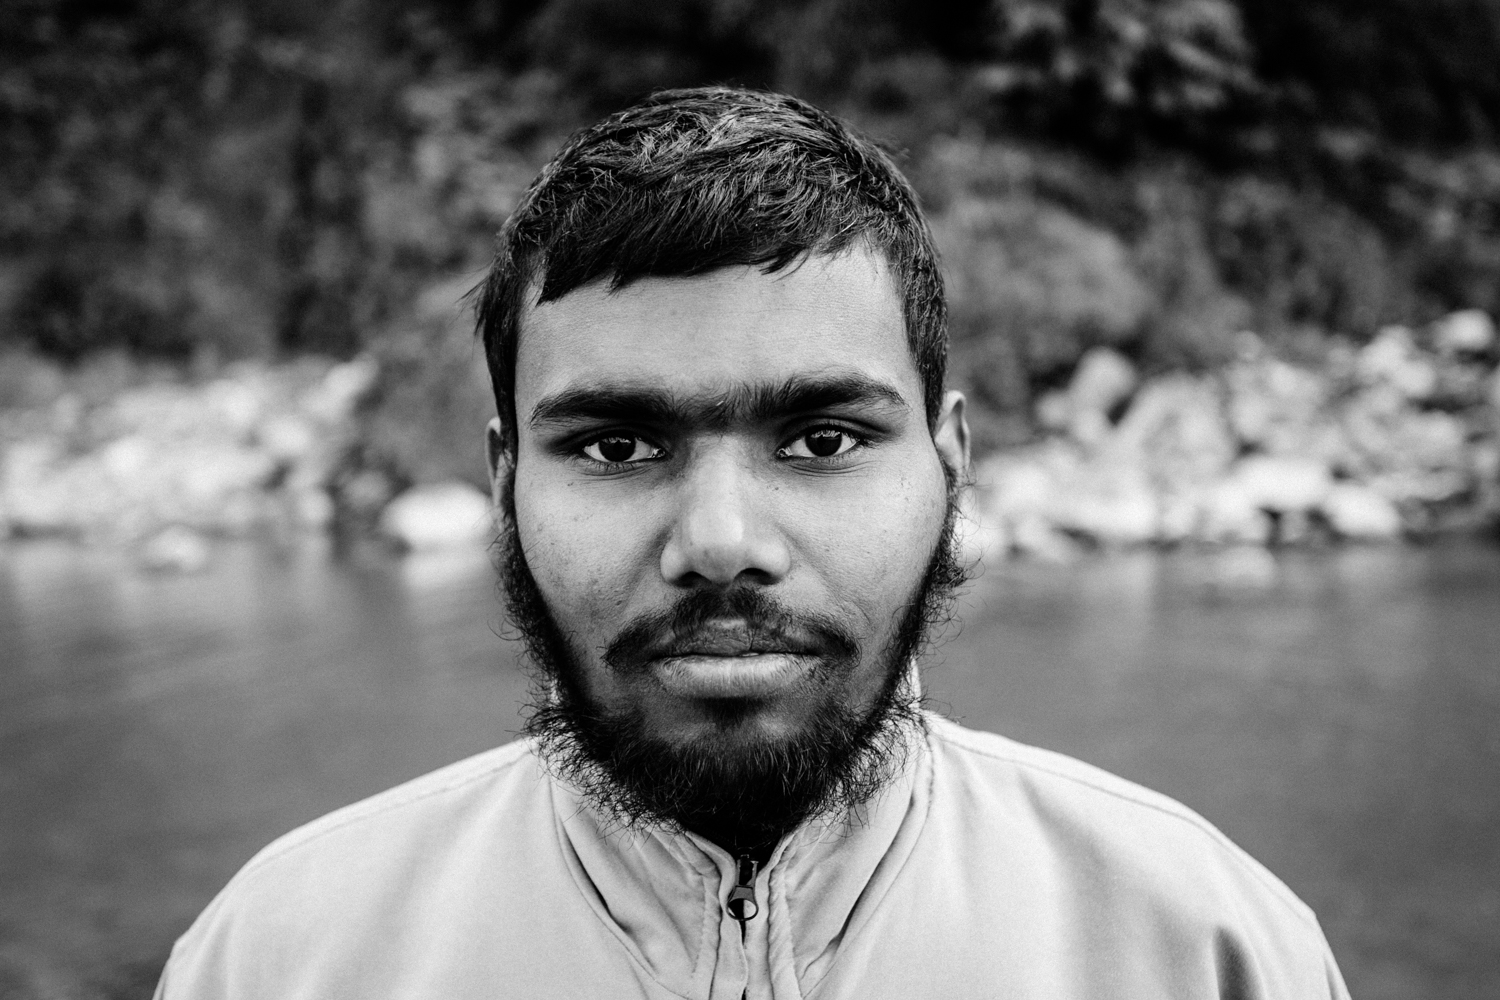 "This 21-year old lives in a tent on the banks of the Ganges in Rishikesh. He is a yogi and, from what I could understand from his limited English, aspires to become a Sandhu (a Hindu monk or ""holy man""). I photographed him near his abode."